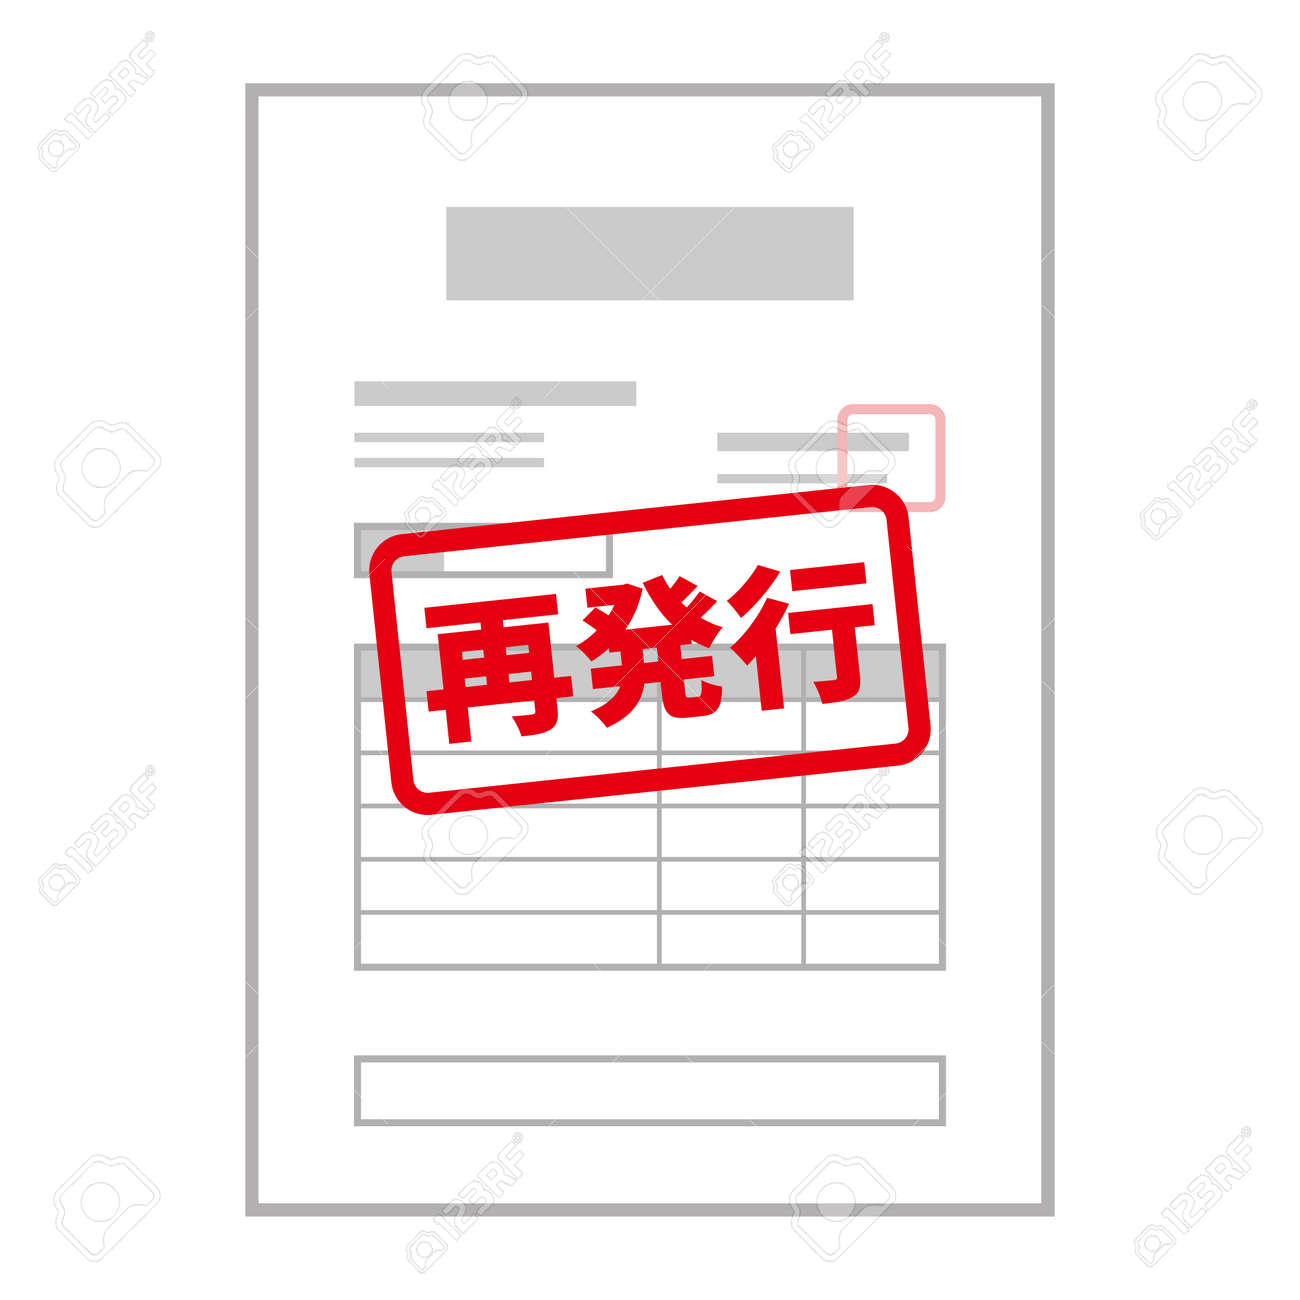 Reissue documents. Image illustration of the document (with reissue stamp in Japanese) - 163903329